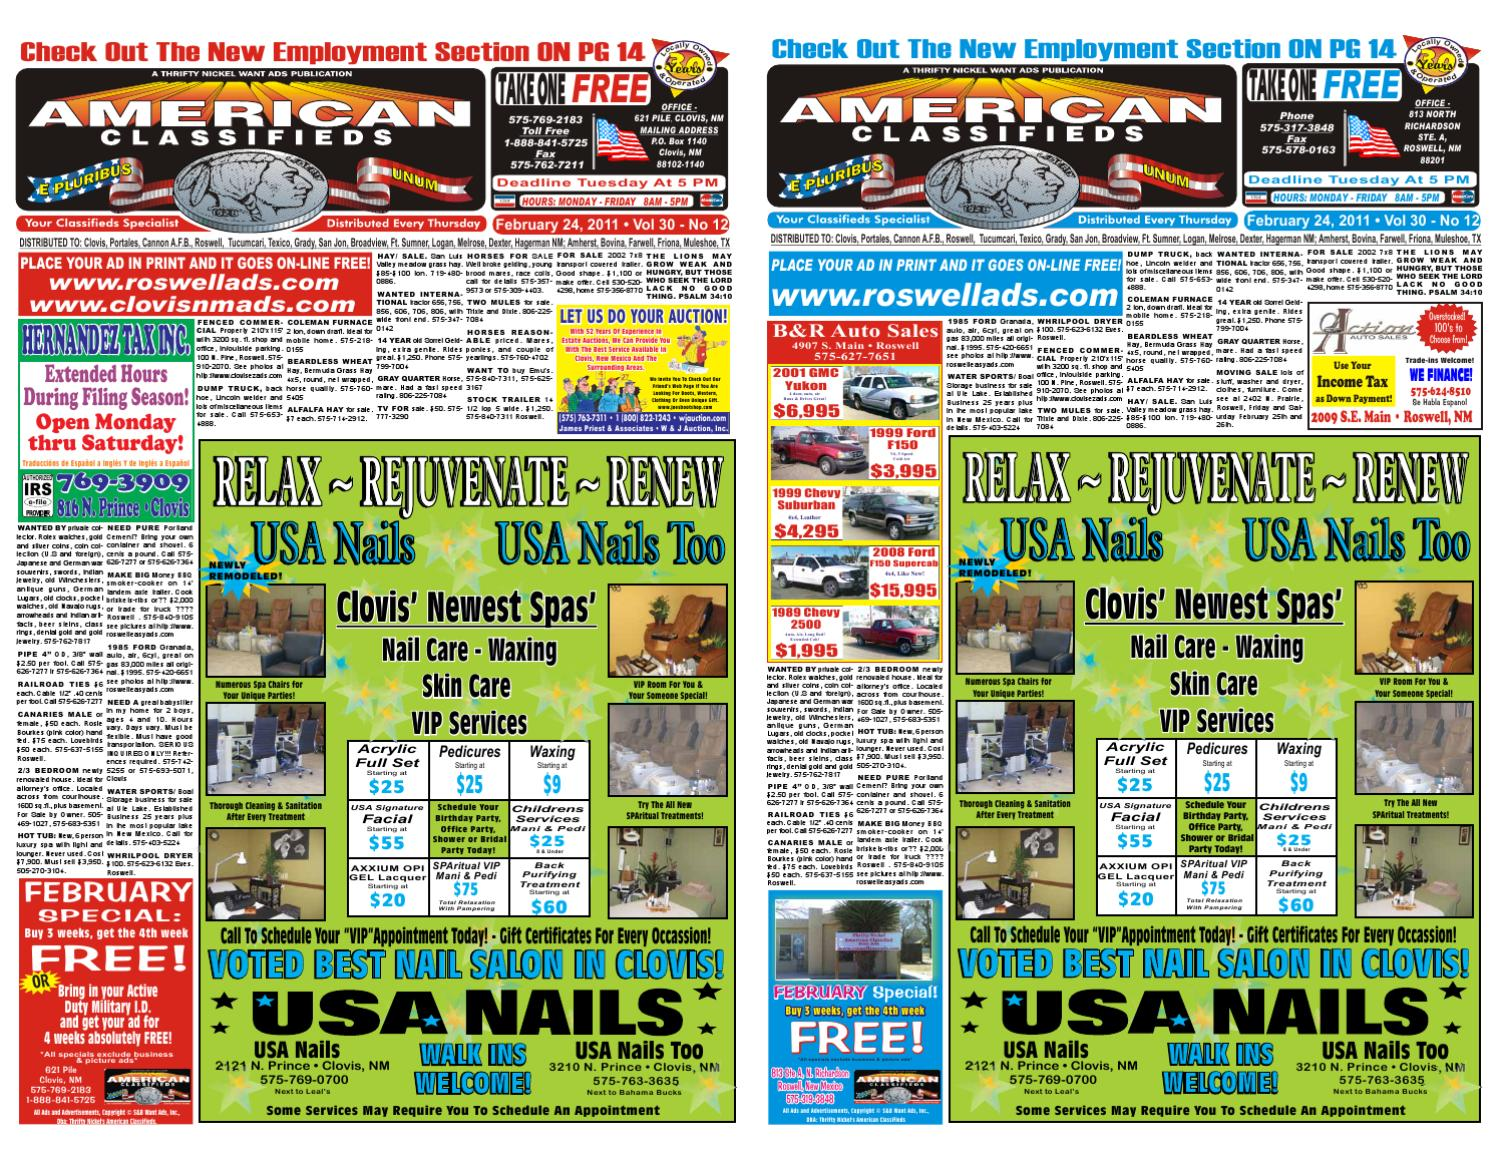 Thrifty Nickel Cars For Sale >> ISSUU - Thrifty Nickel/American Classifieds Roswell/Clovis by EZAds of USA